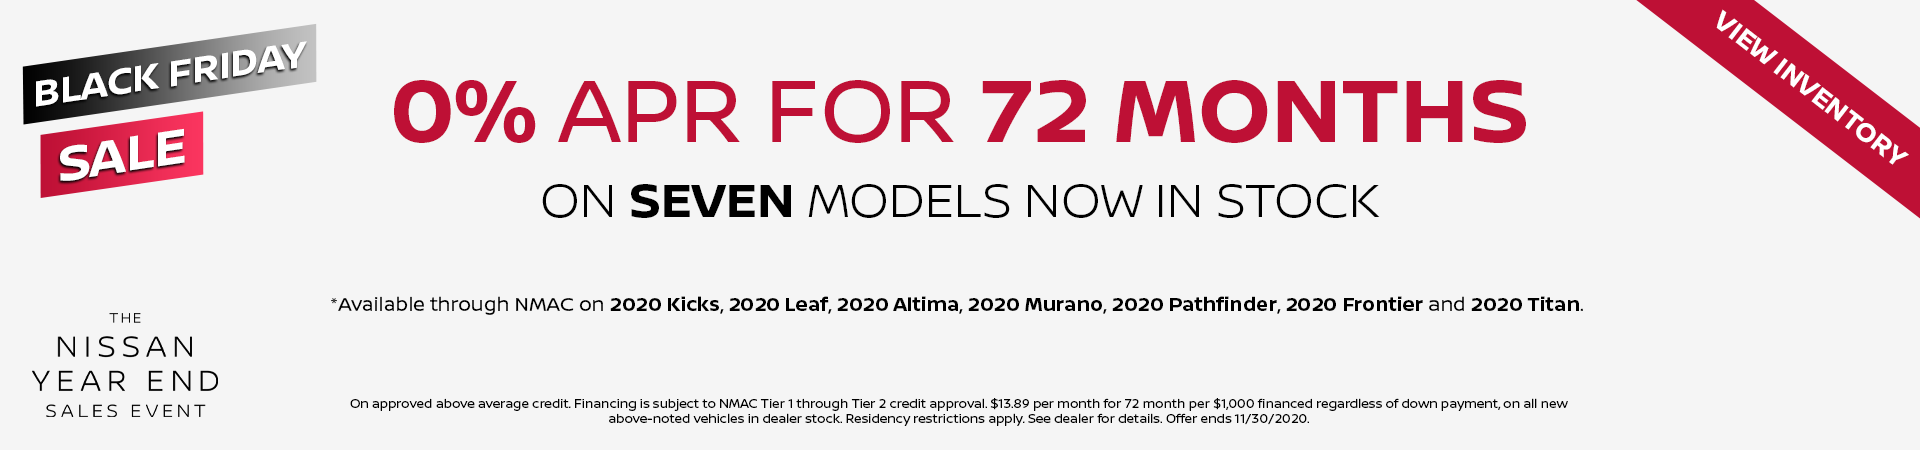 Nissan 0% APR Financing Nov 20 v5